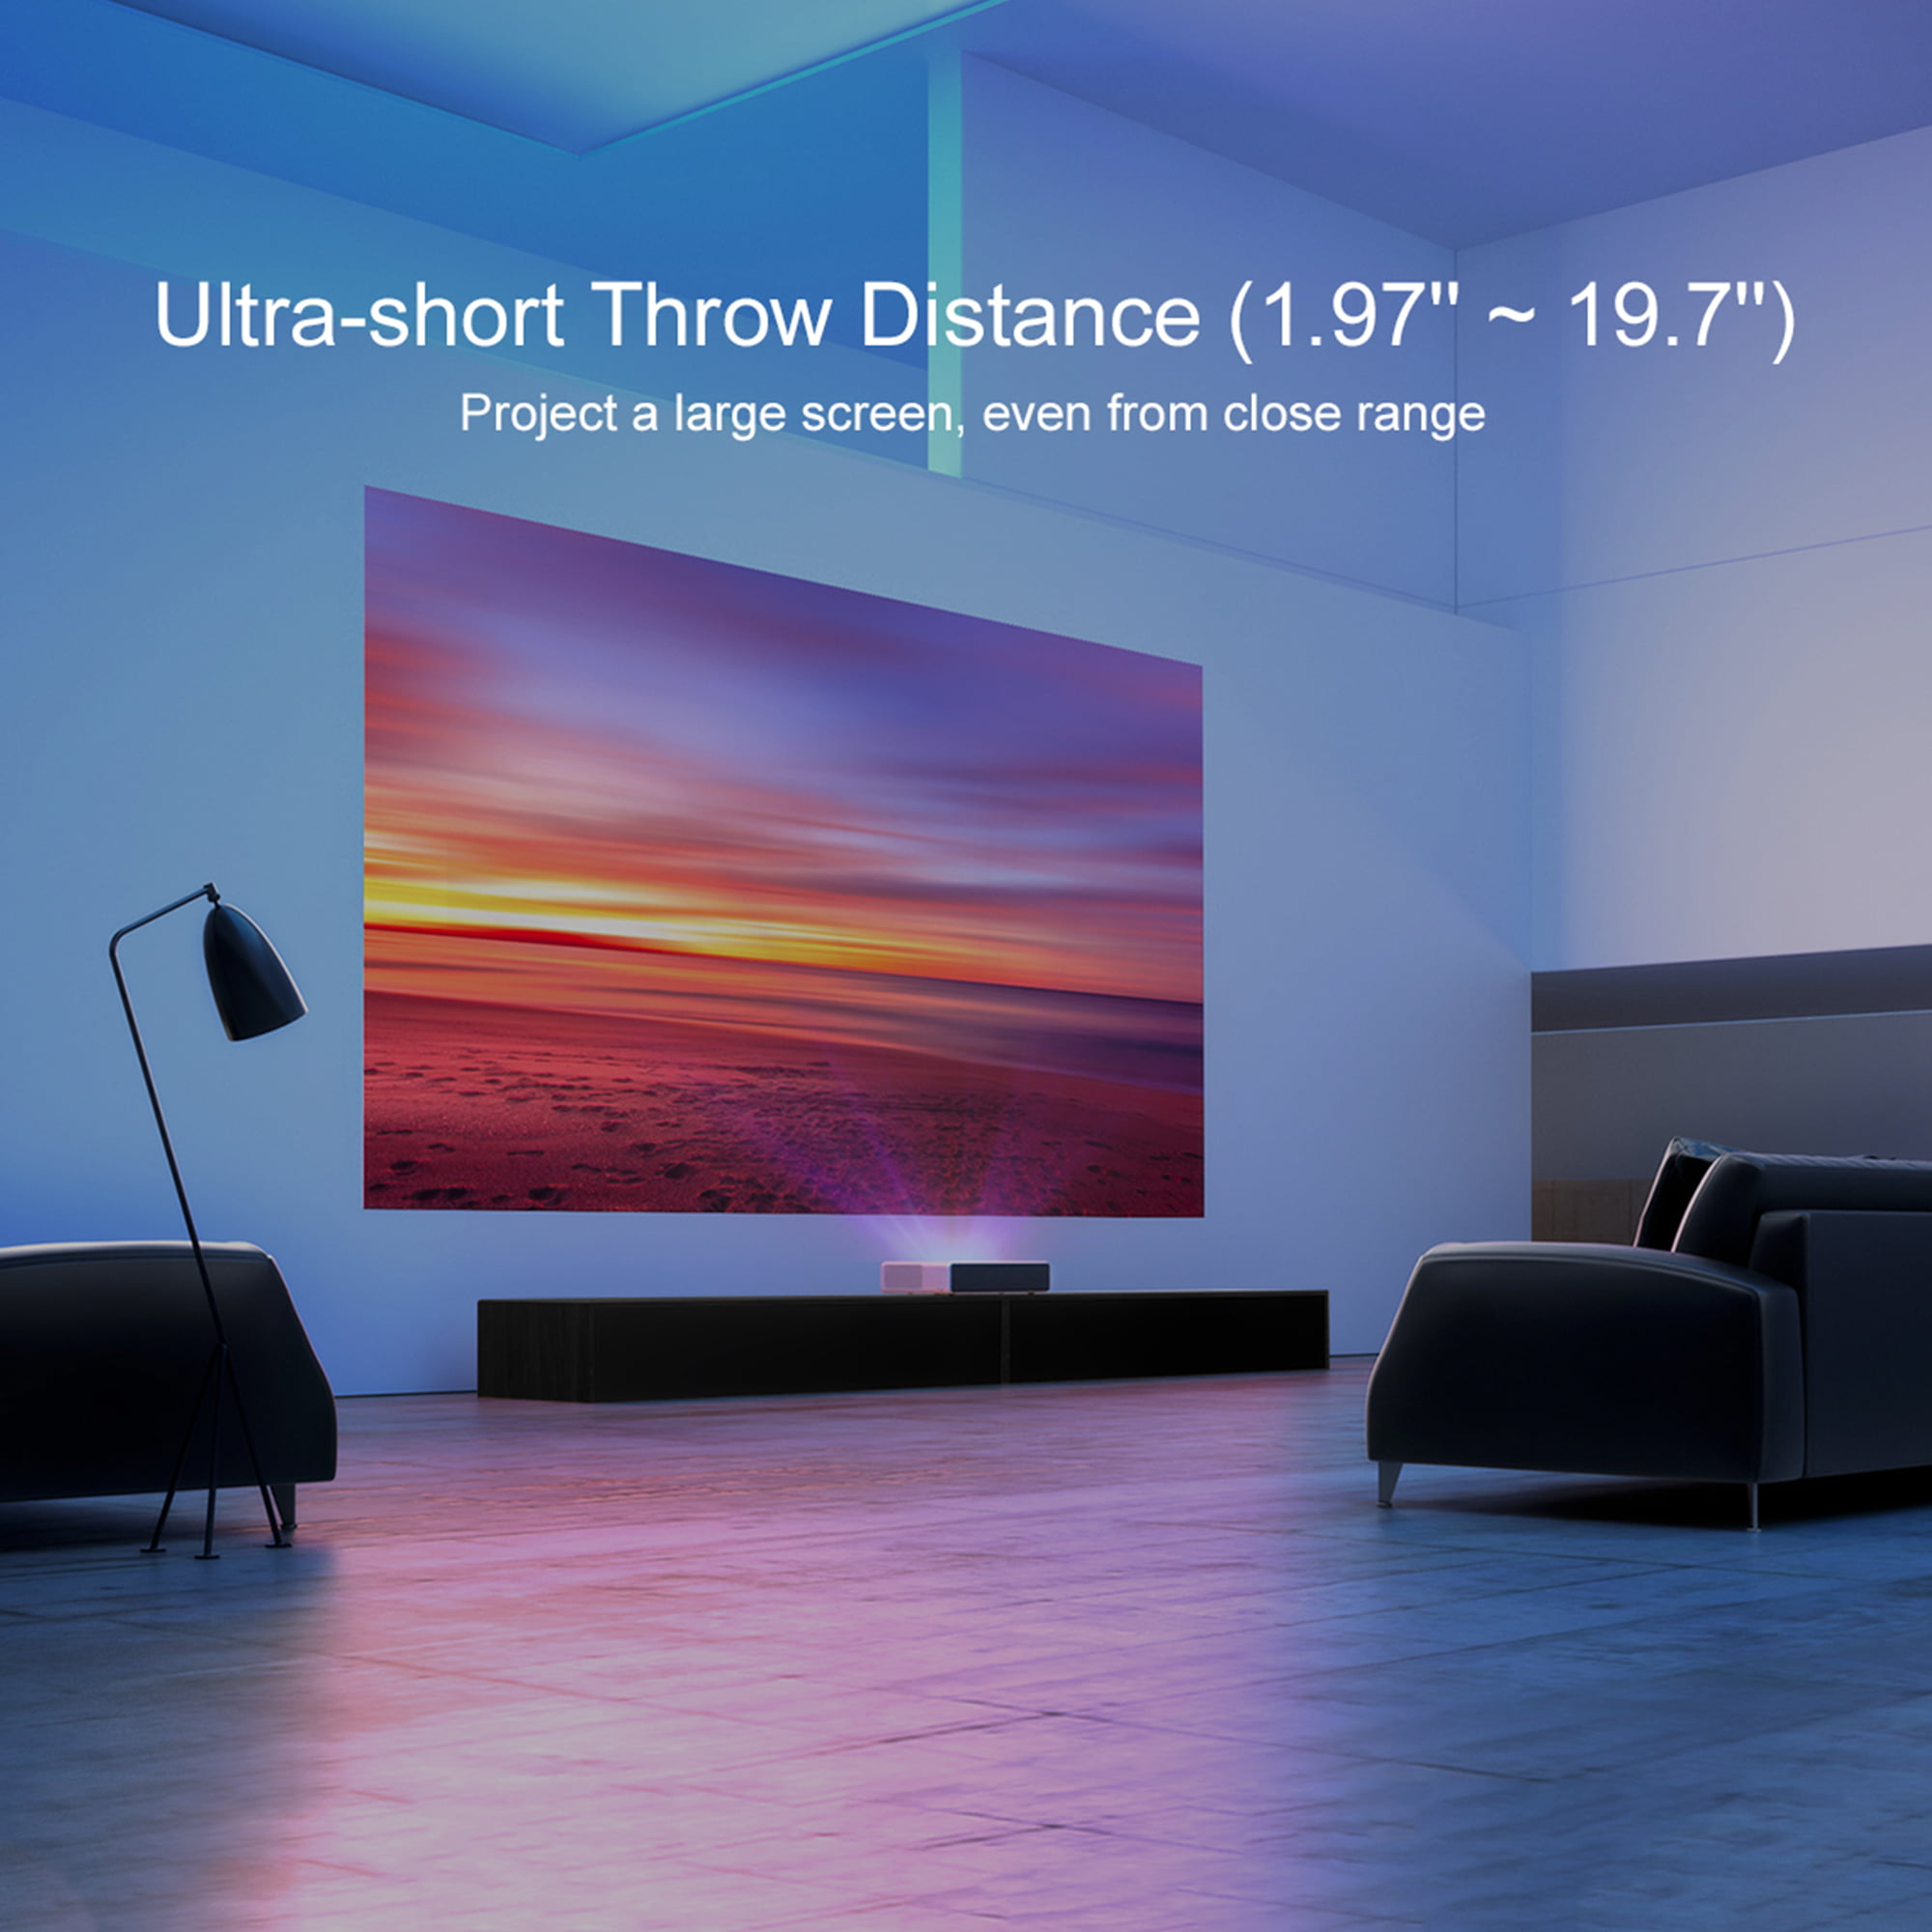 Xiaomi Mi Laser Ultra-Short Throw Projector 150 inch, Built-In Android TV,  Google Assistant, Dolby Stereo Speakers